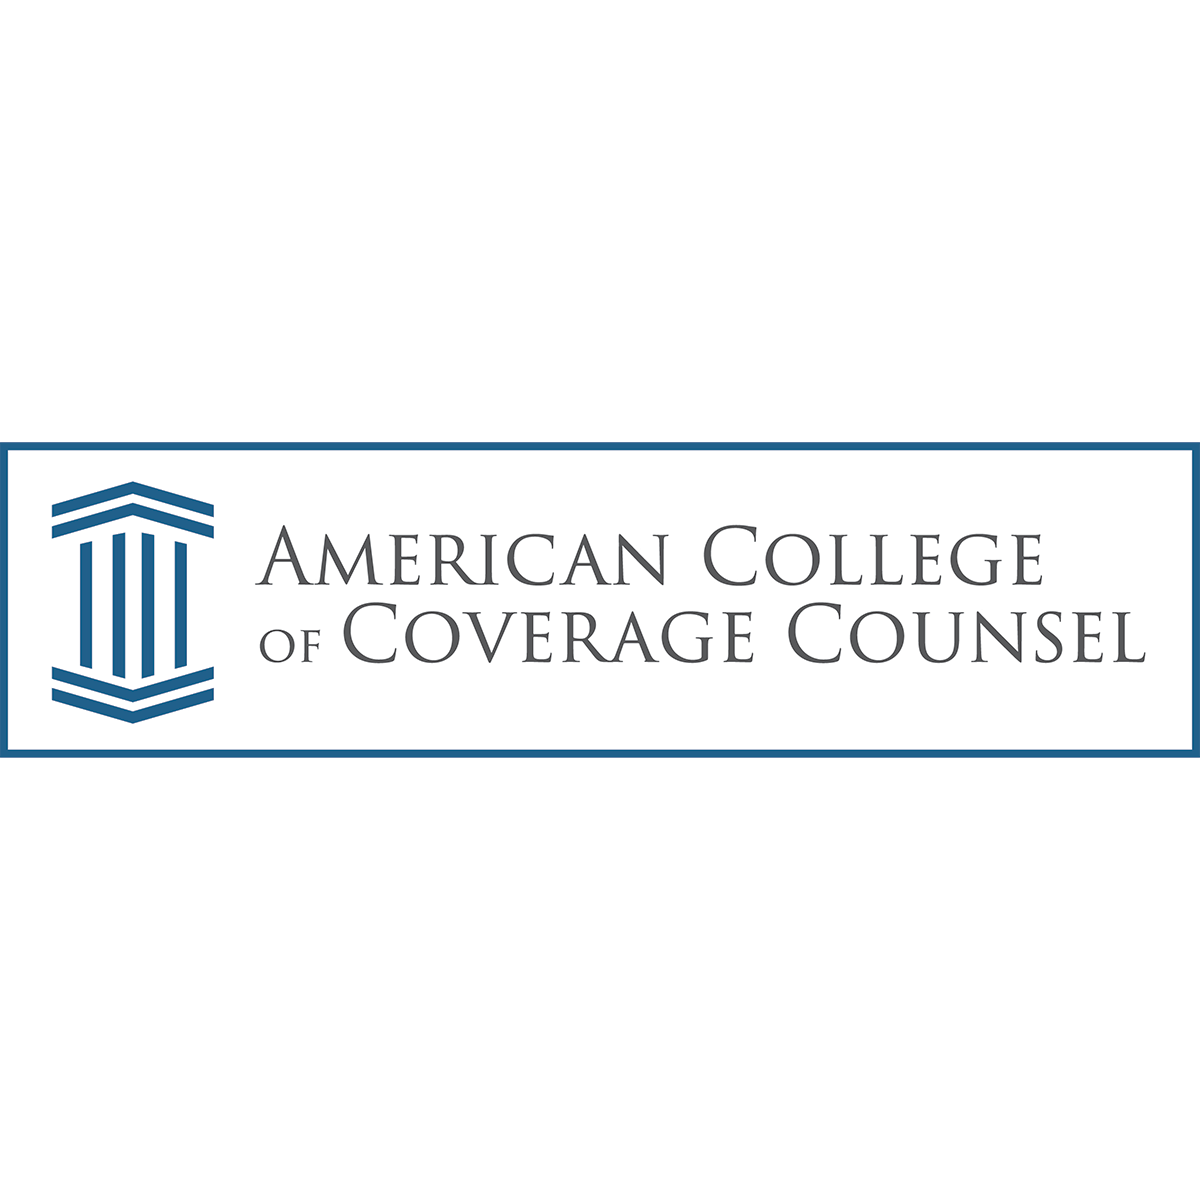 ACCC - American College of Coverage Counsel